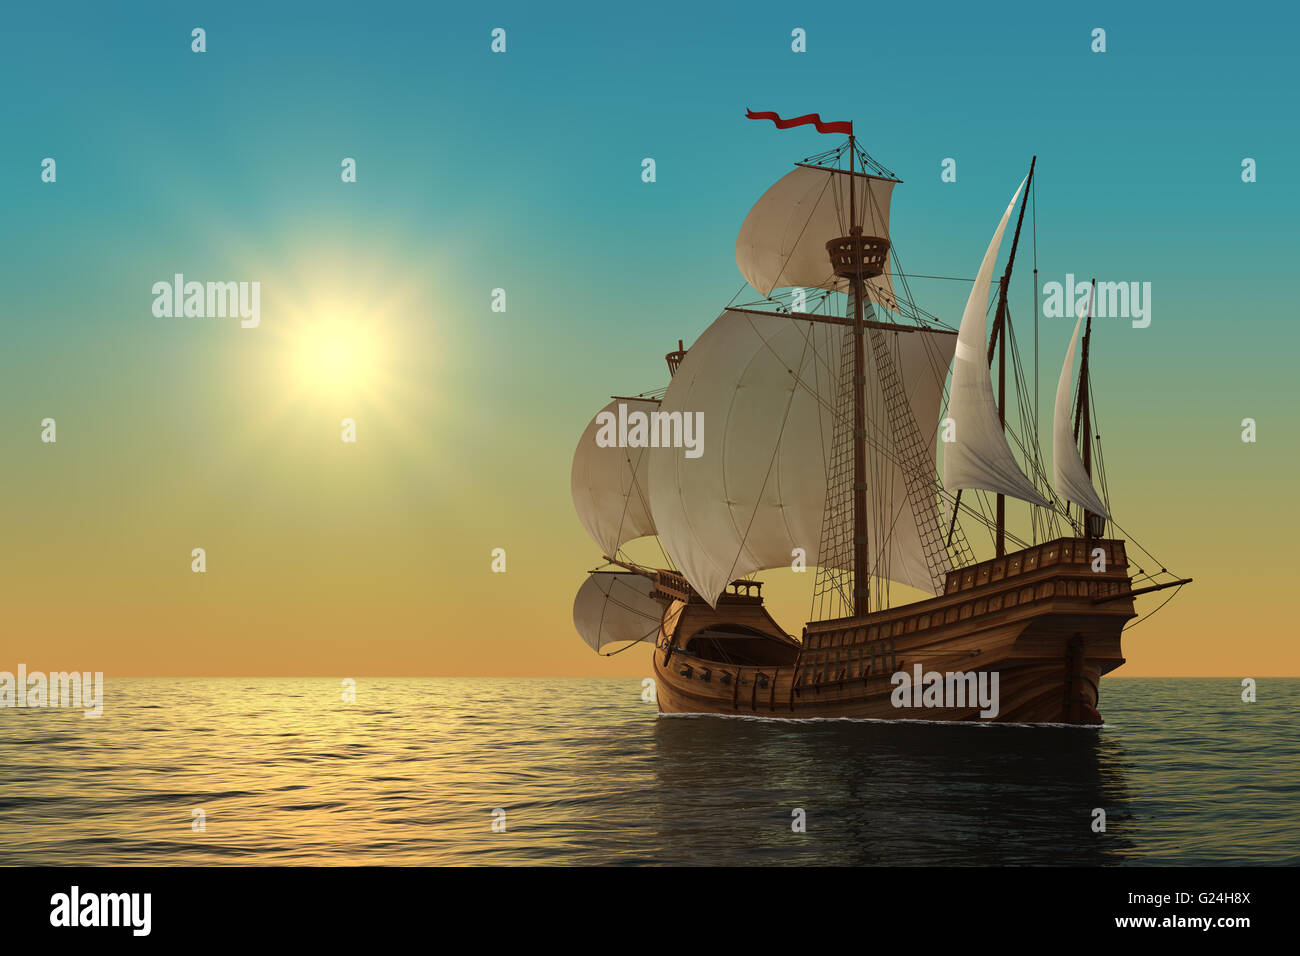 Caravel In The Ocean - Stock Image